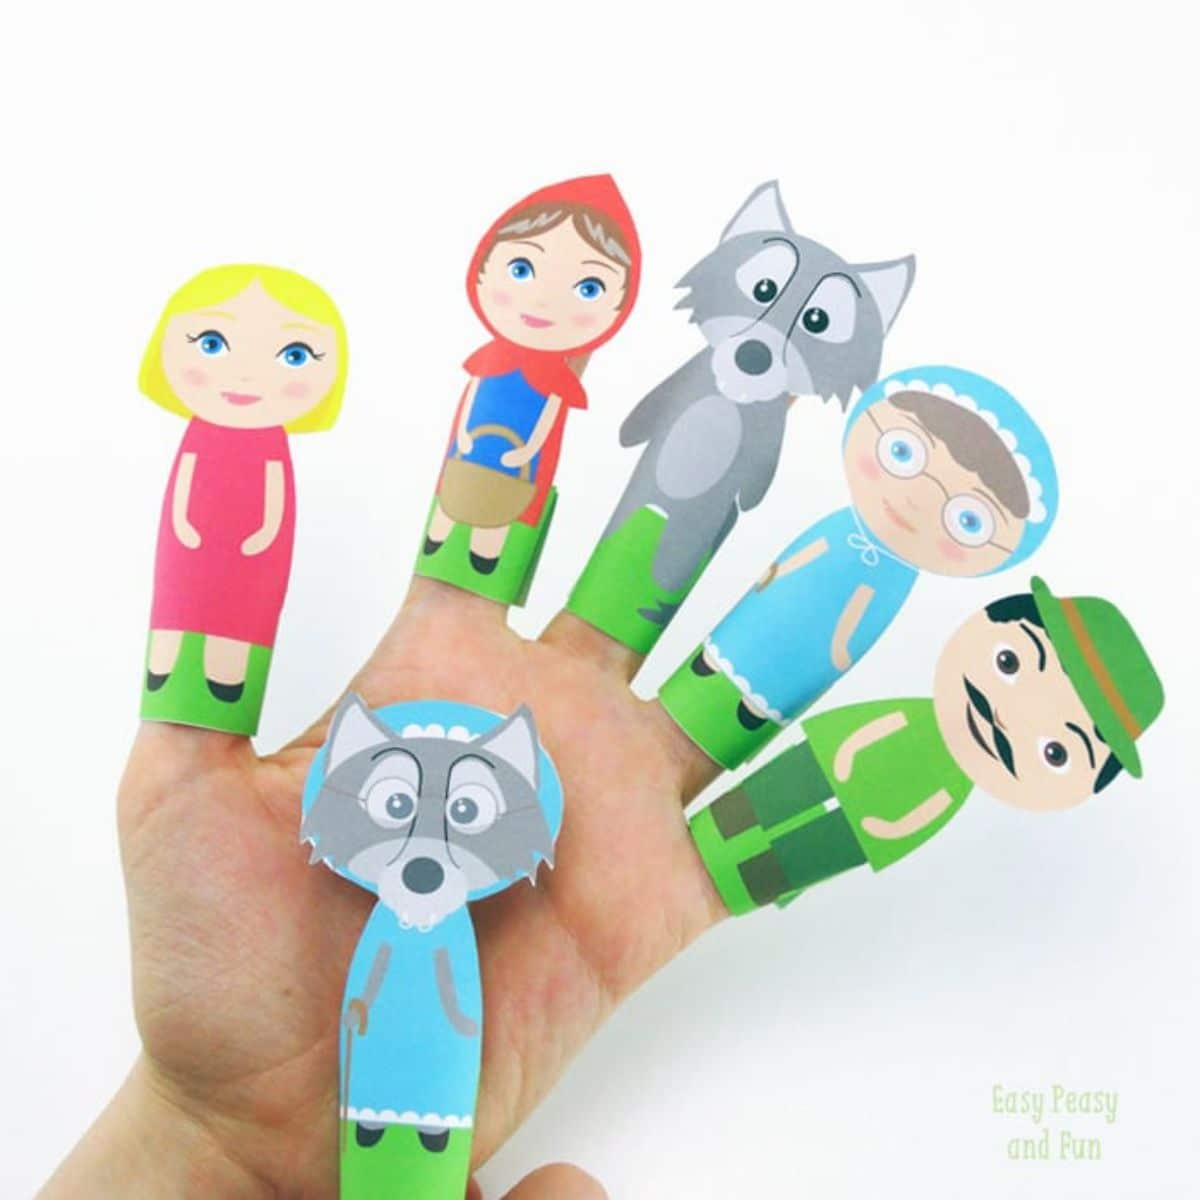 A hand has a finger puppet of a red riding hood character on each of the fingers